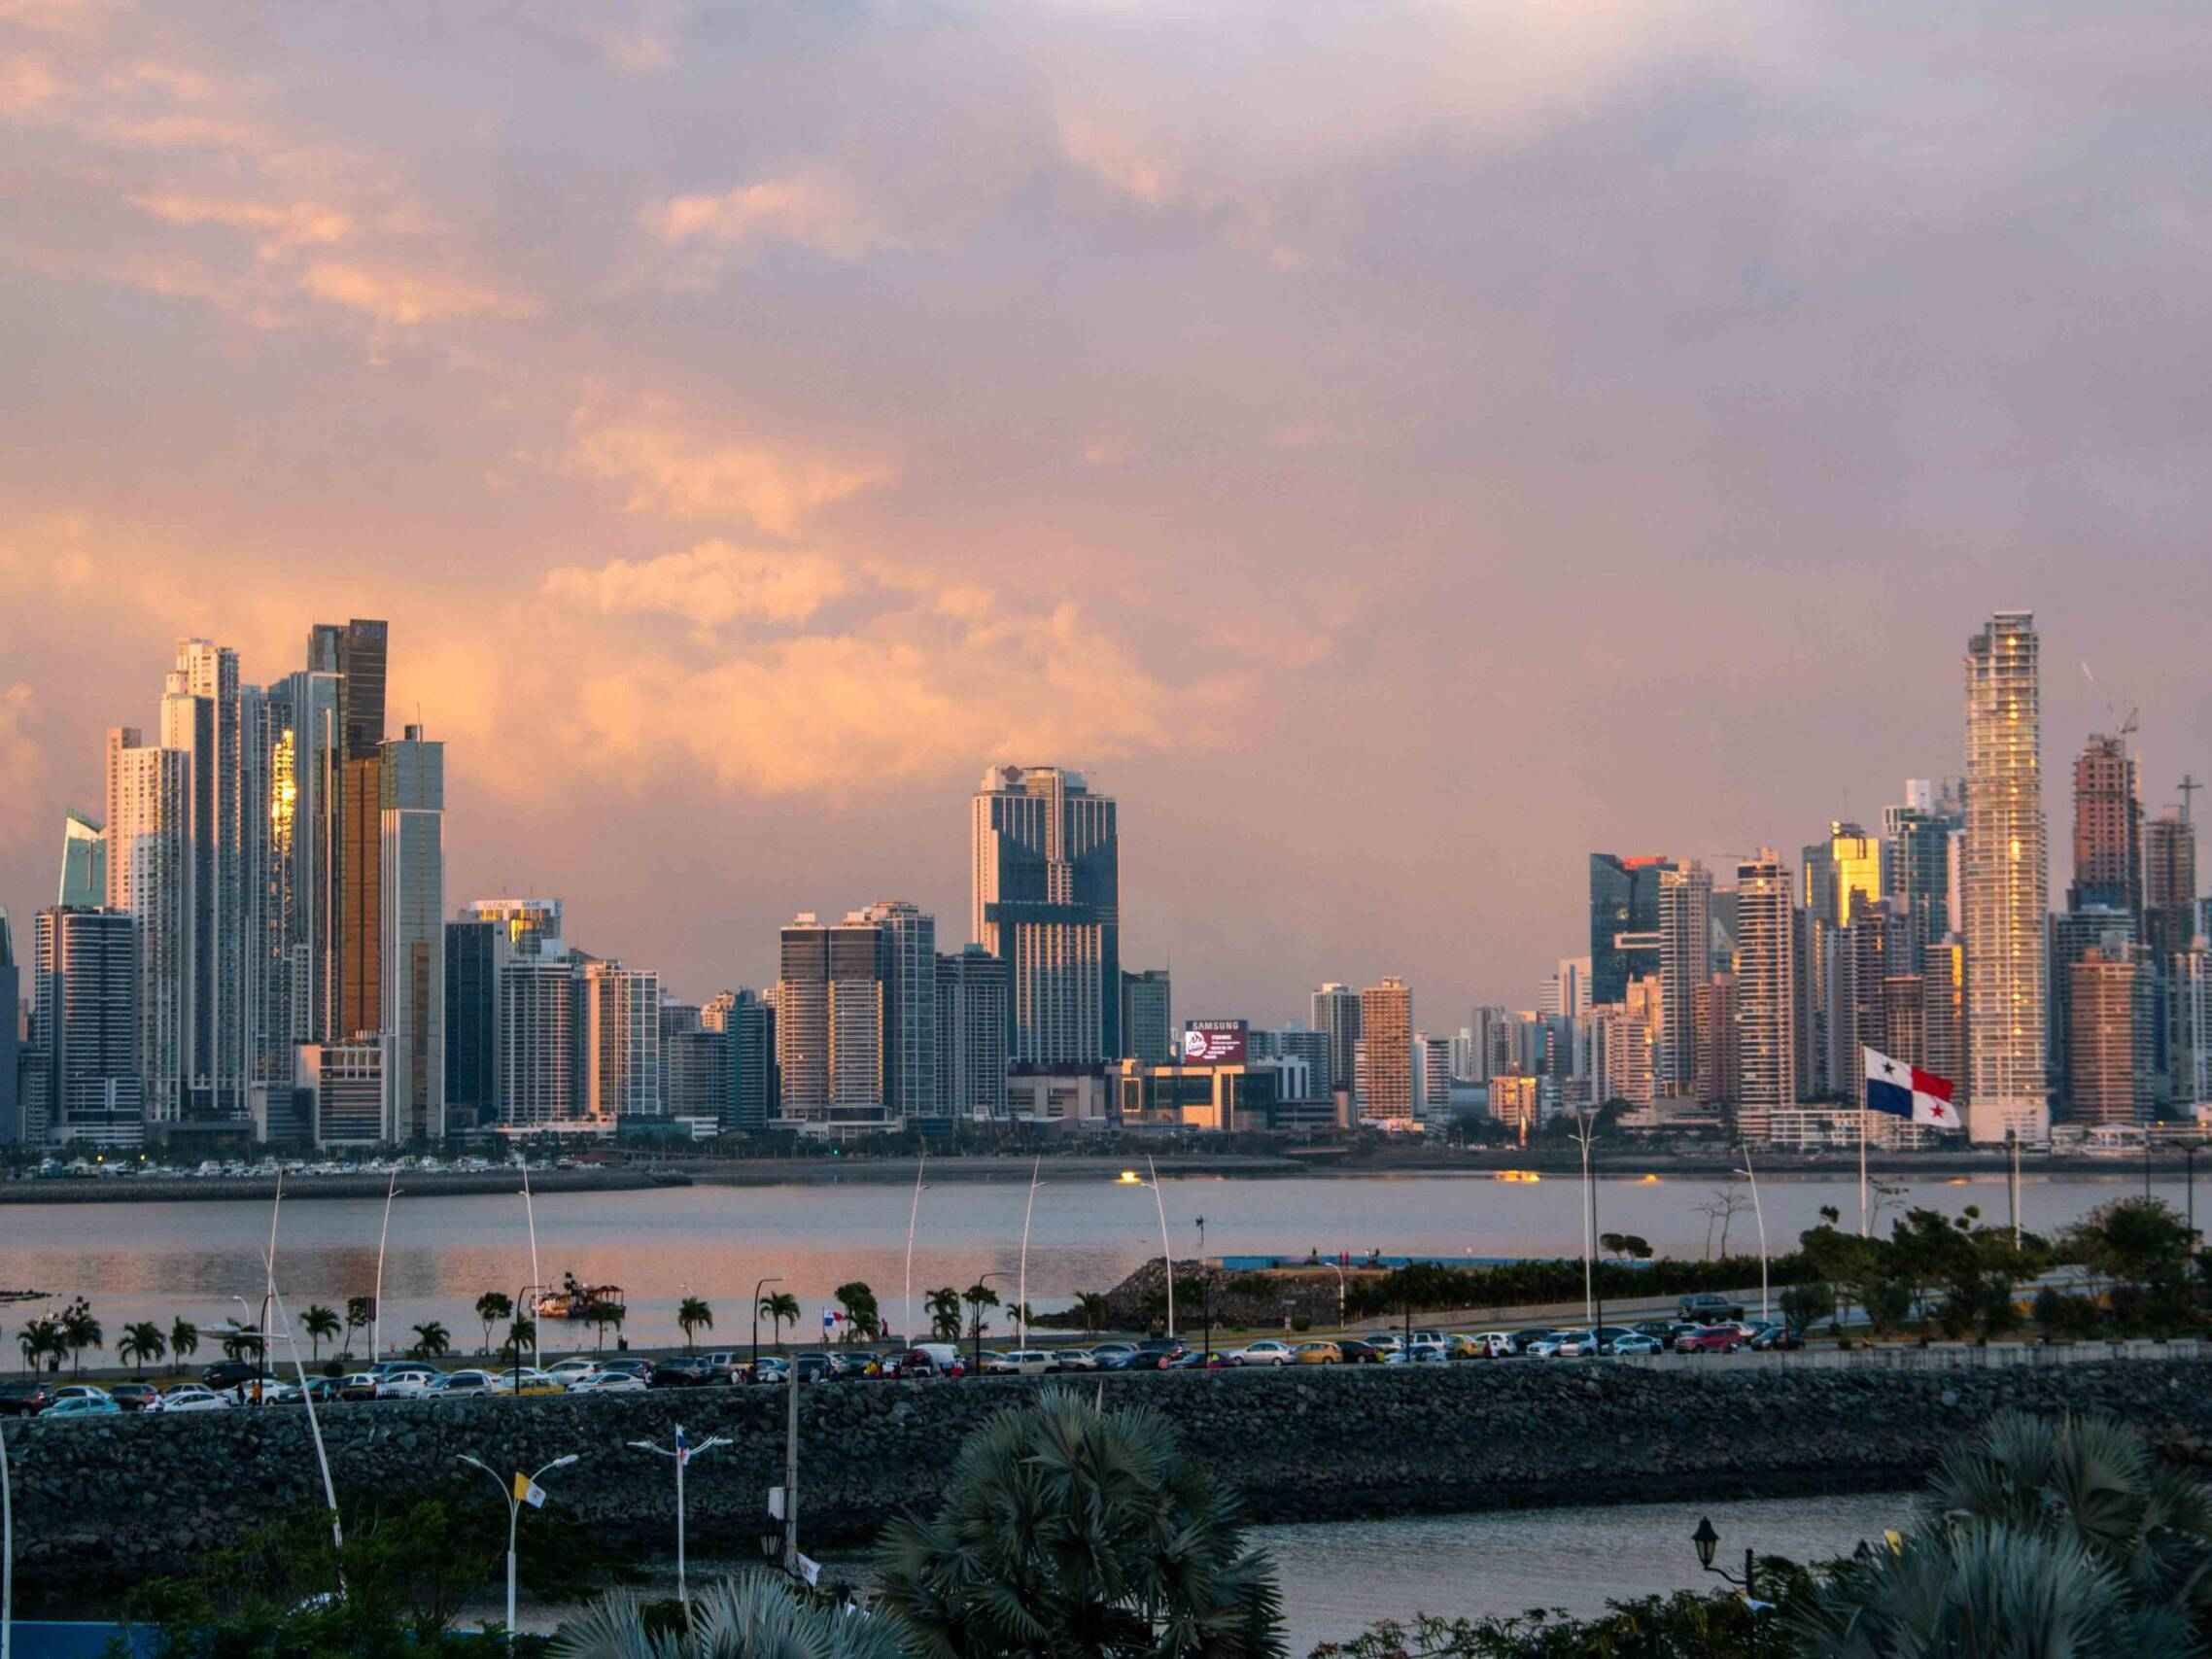 Panama City skyline during sunset